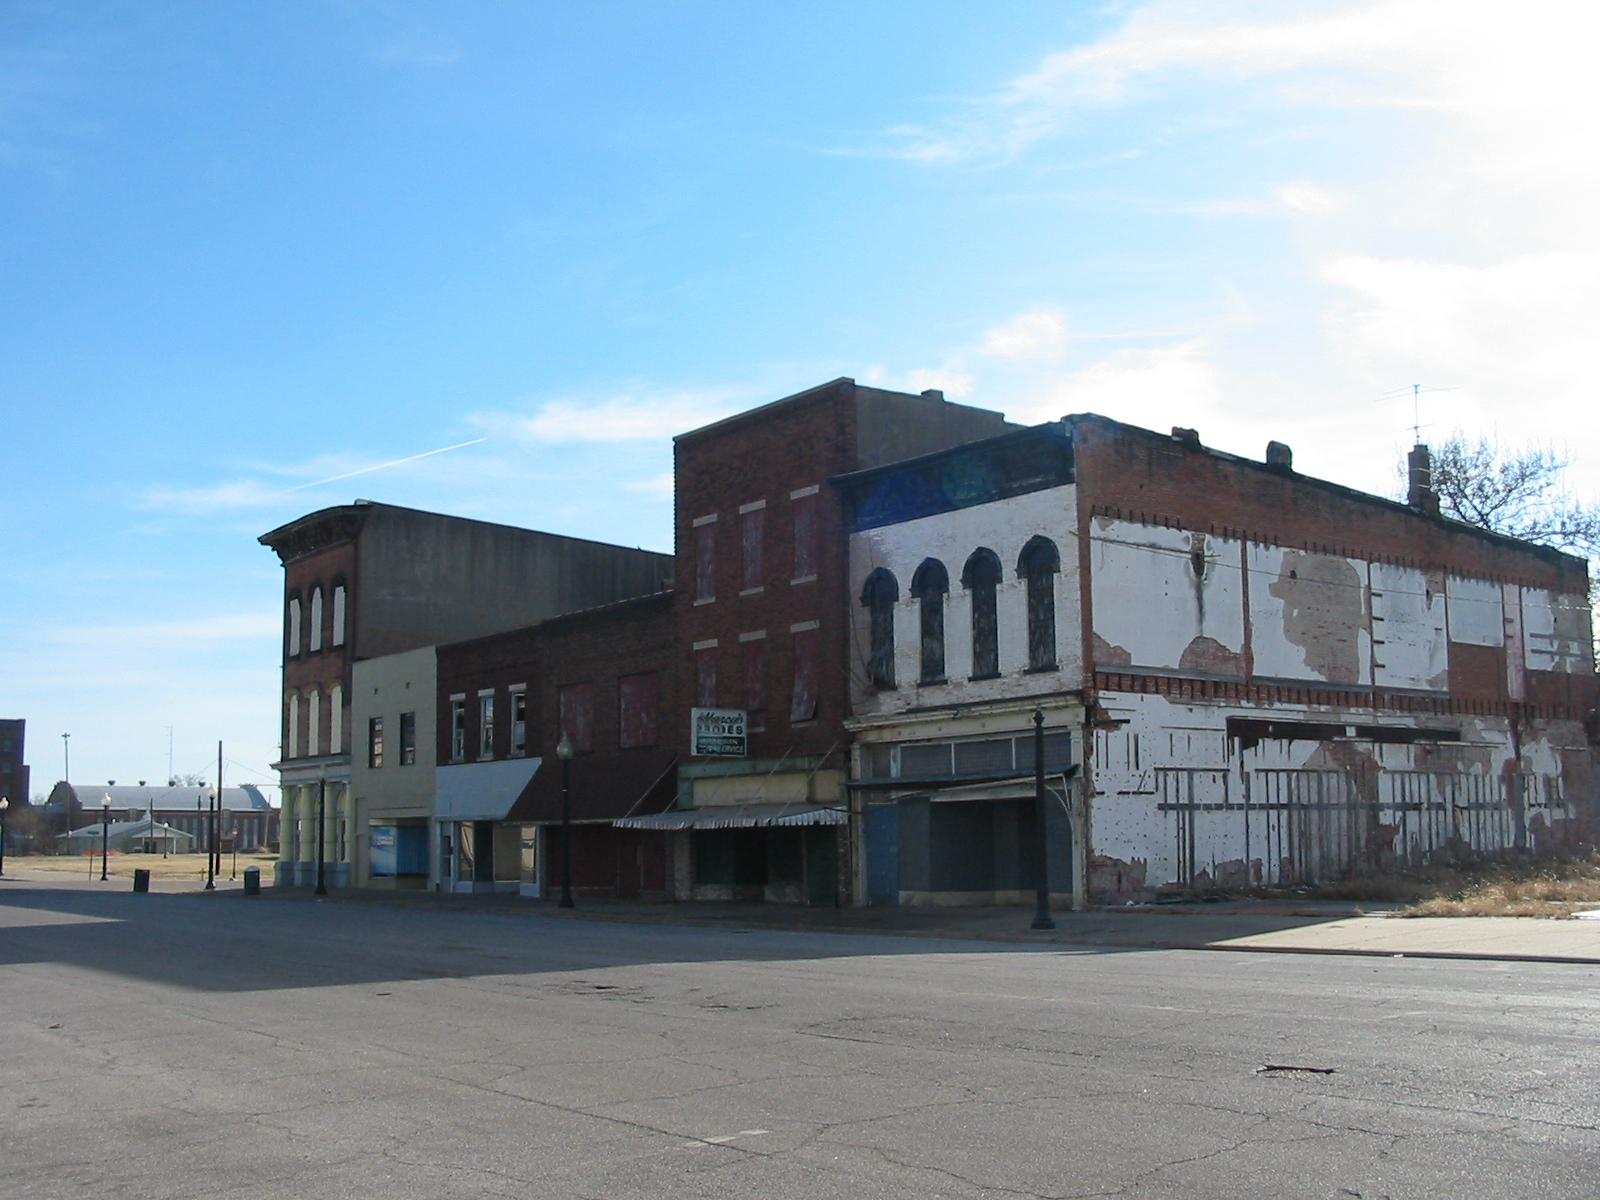 File:Commercial Street Cairo Illinois Closed.jpg